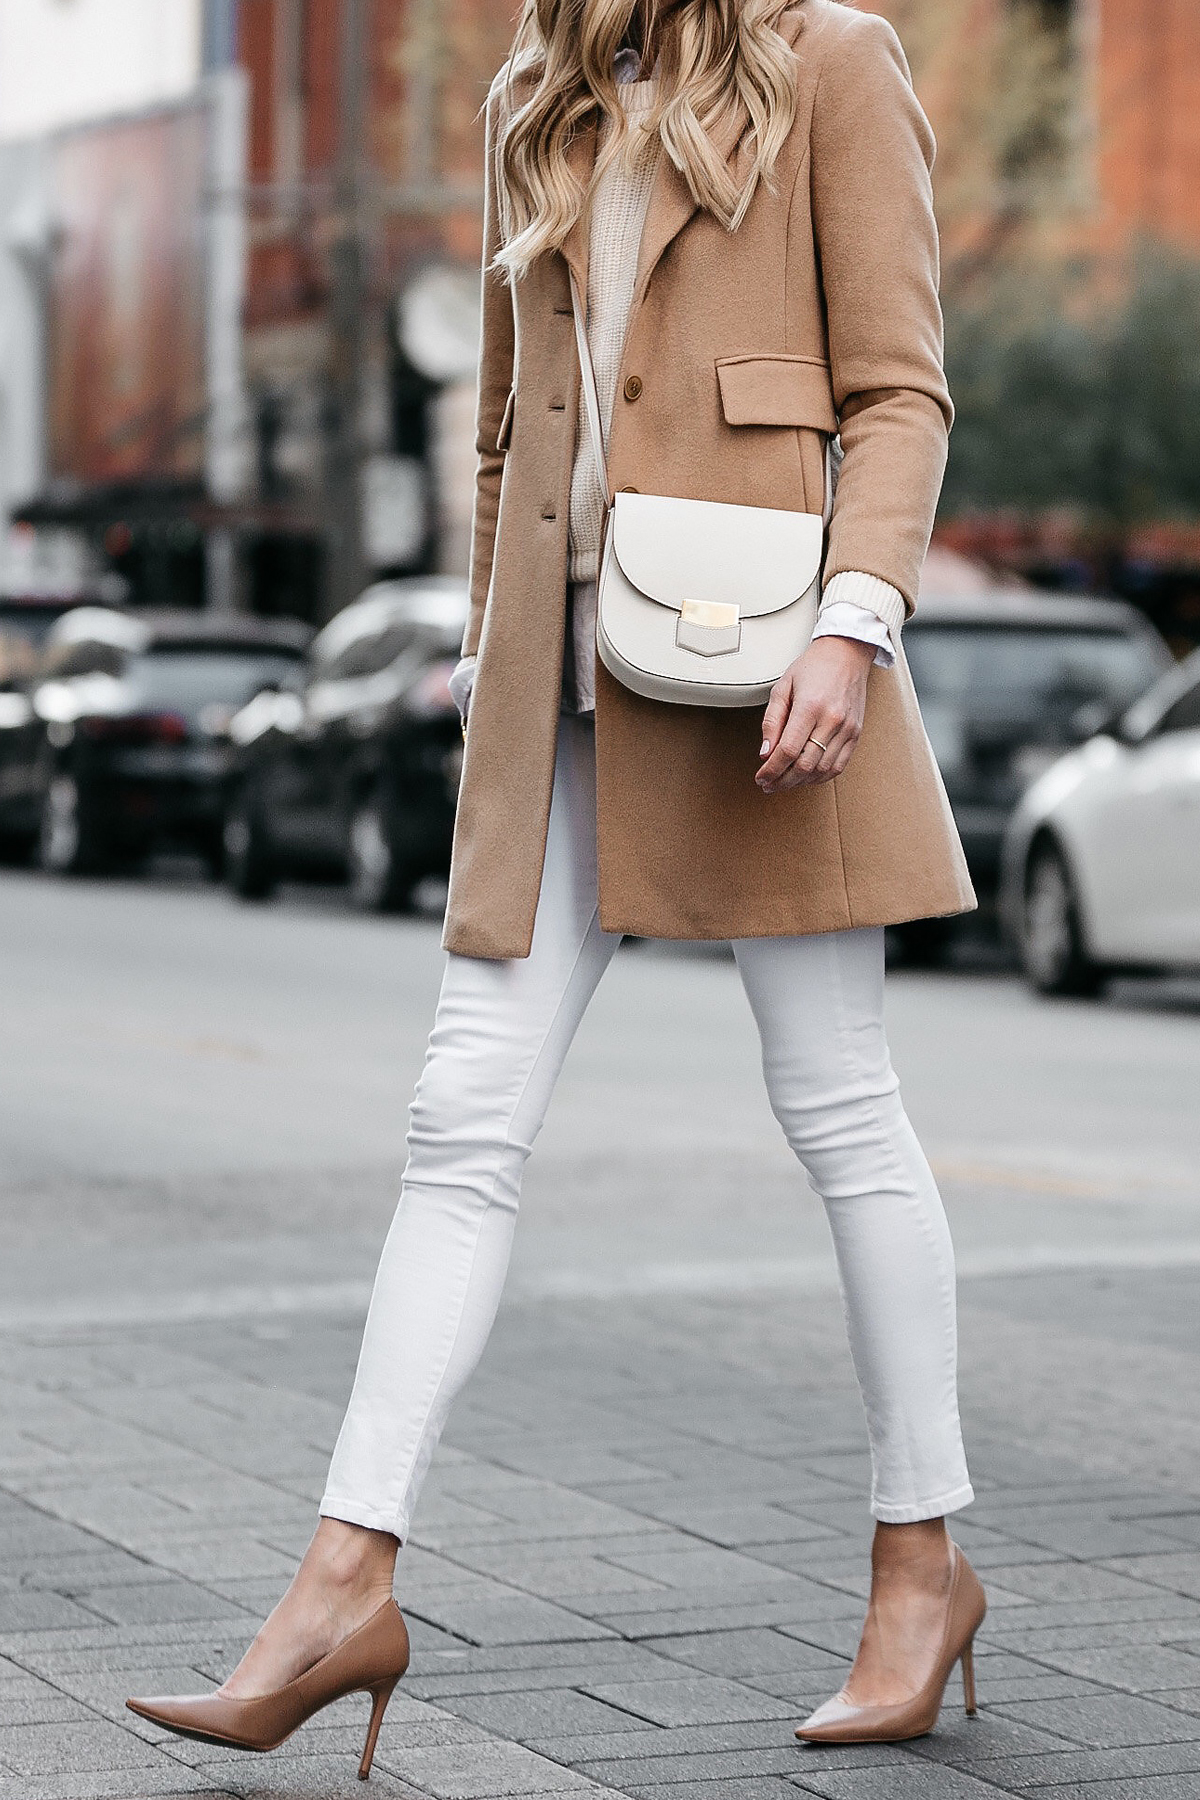 Camel Wool Coat Ivory Sweater White Skinny Jeans Nude Pumps Celine Trotteur White Handbag Fashion Jackson Dallas Blogger Fashion Blogger Street Style